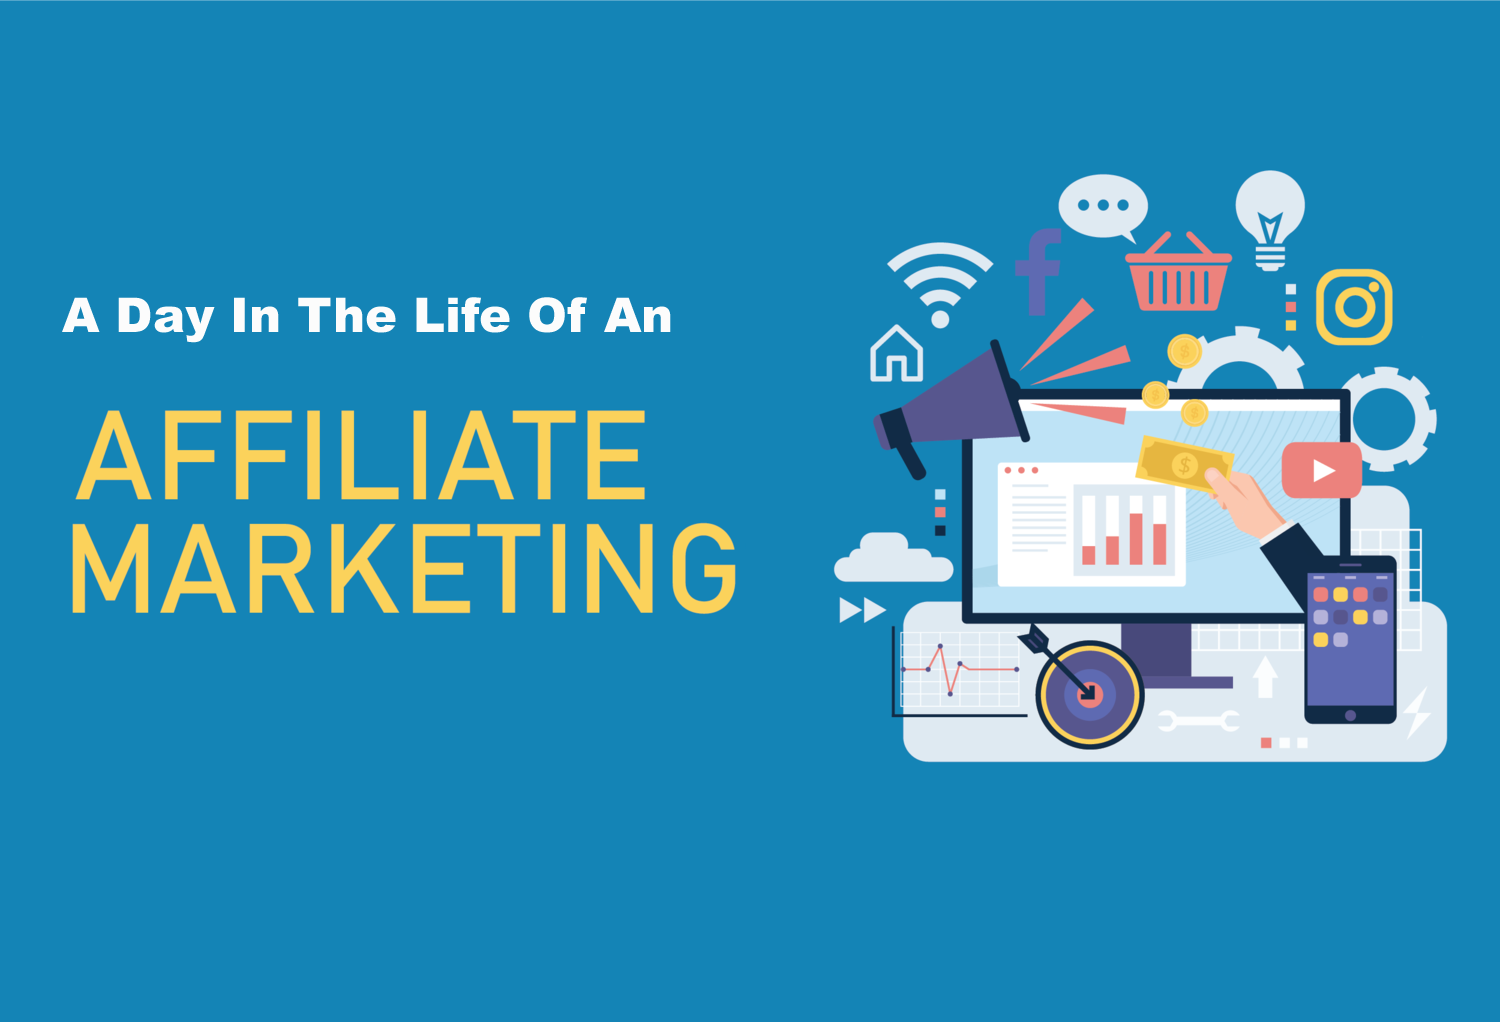 A Day In The Life Of An Affiliate Marketer